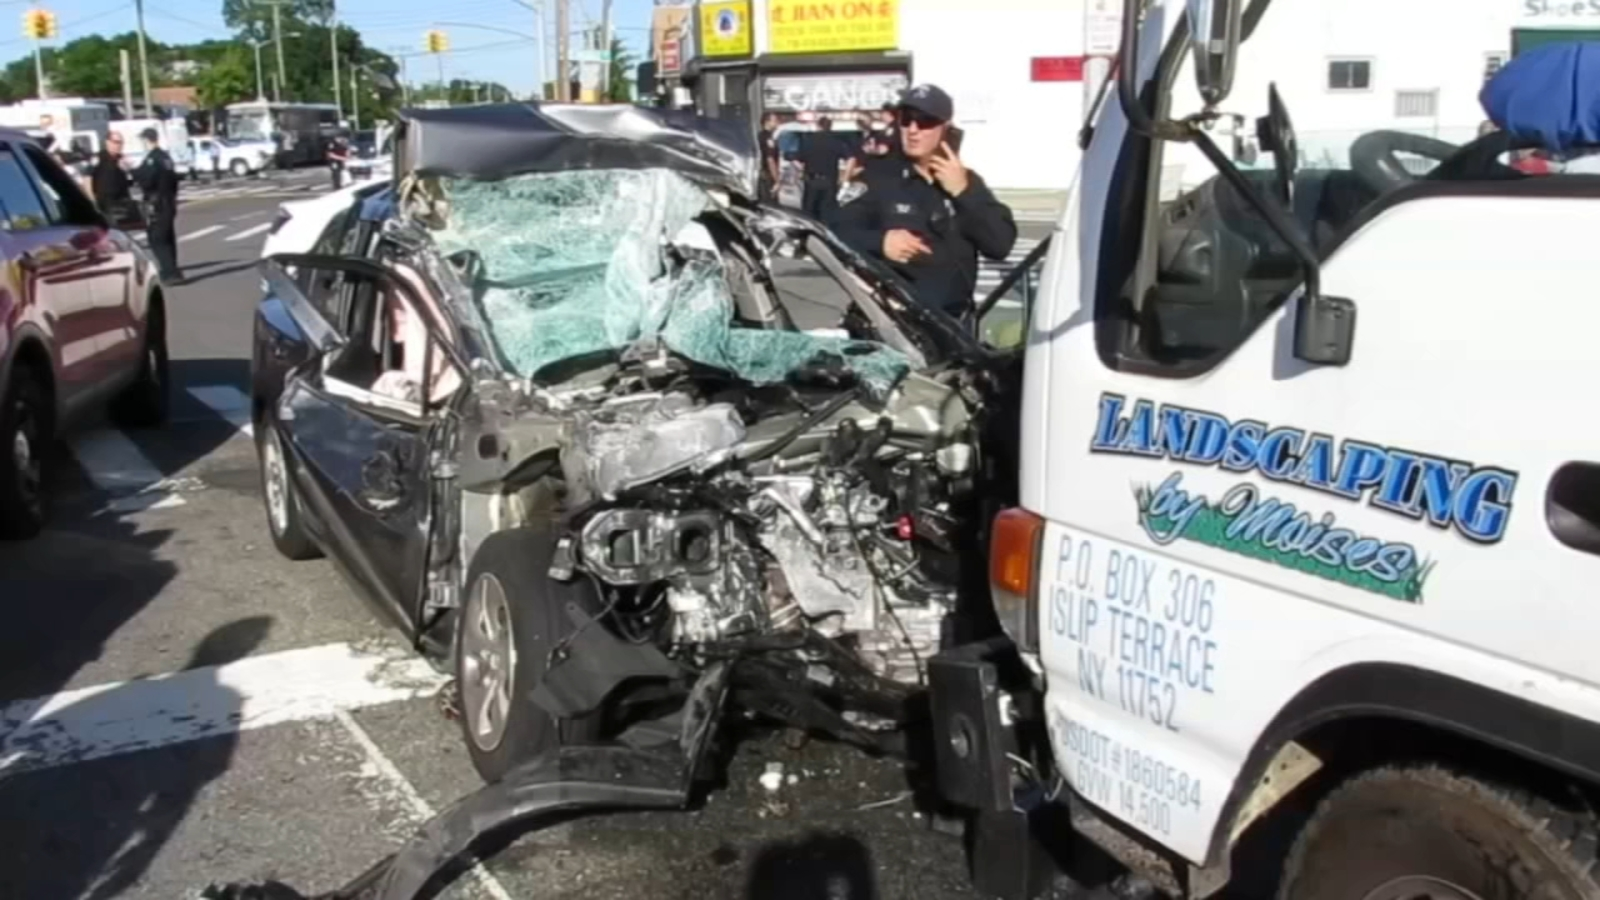 3-vehicle crash in Queens leaves 4 injured